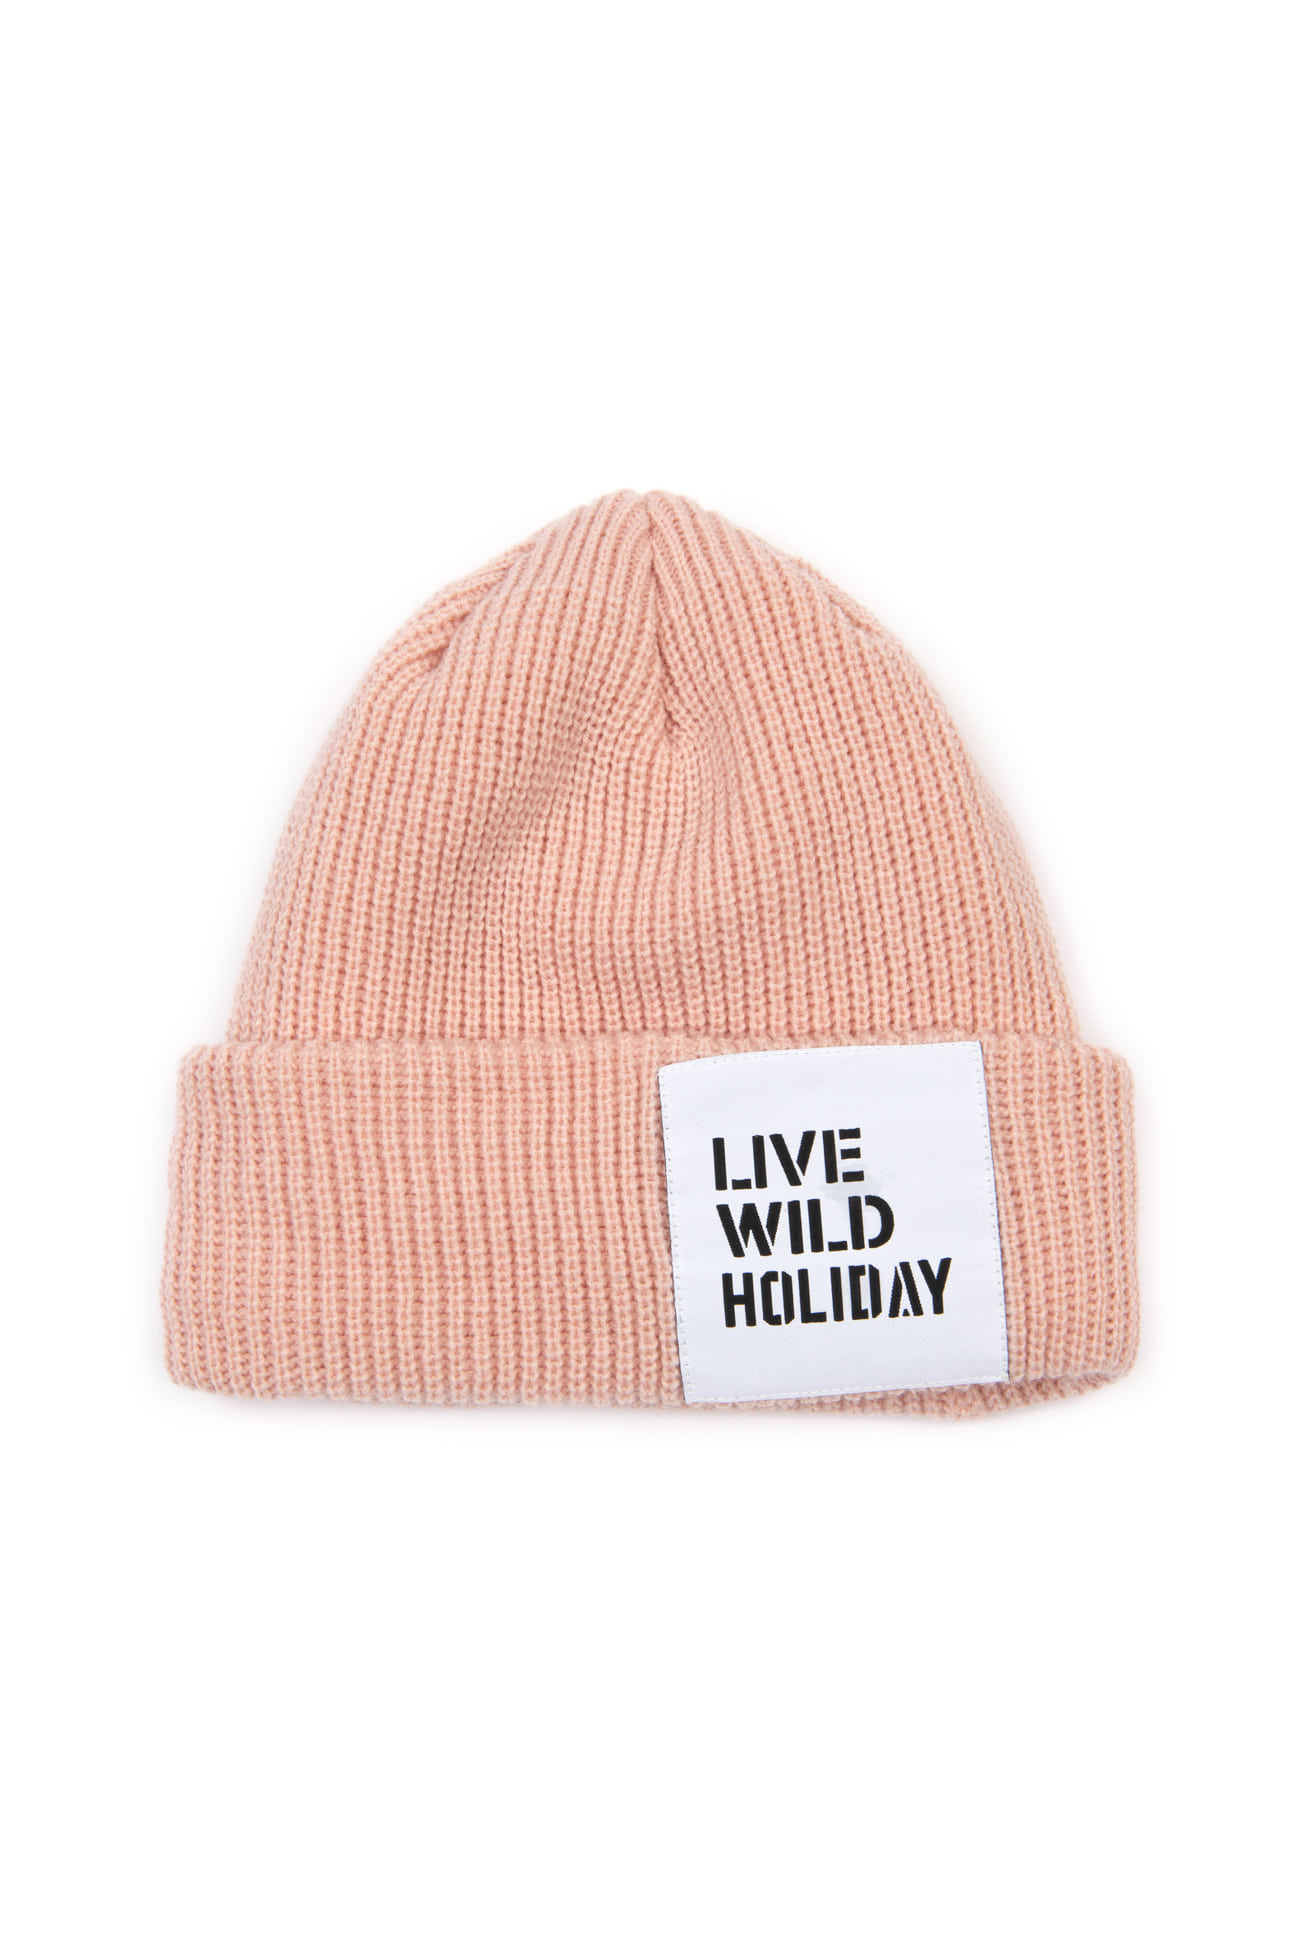 DUSK beanie - pinkHOLIDAY OUTERWEAR